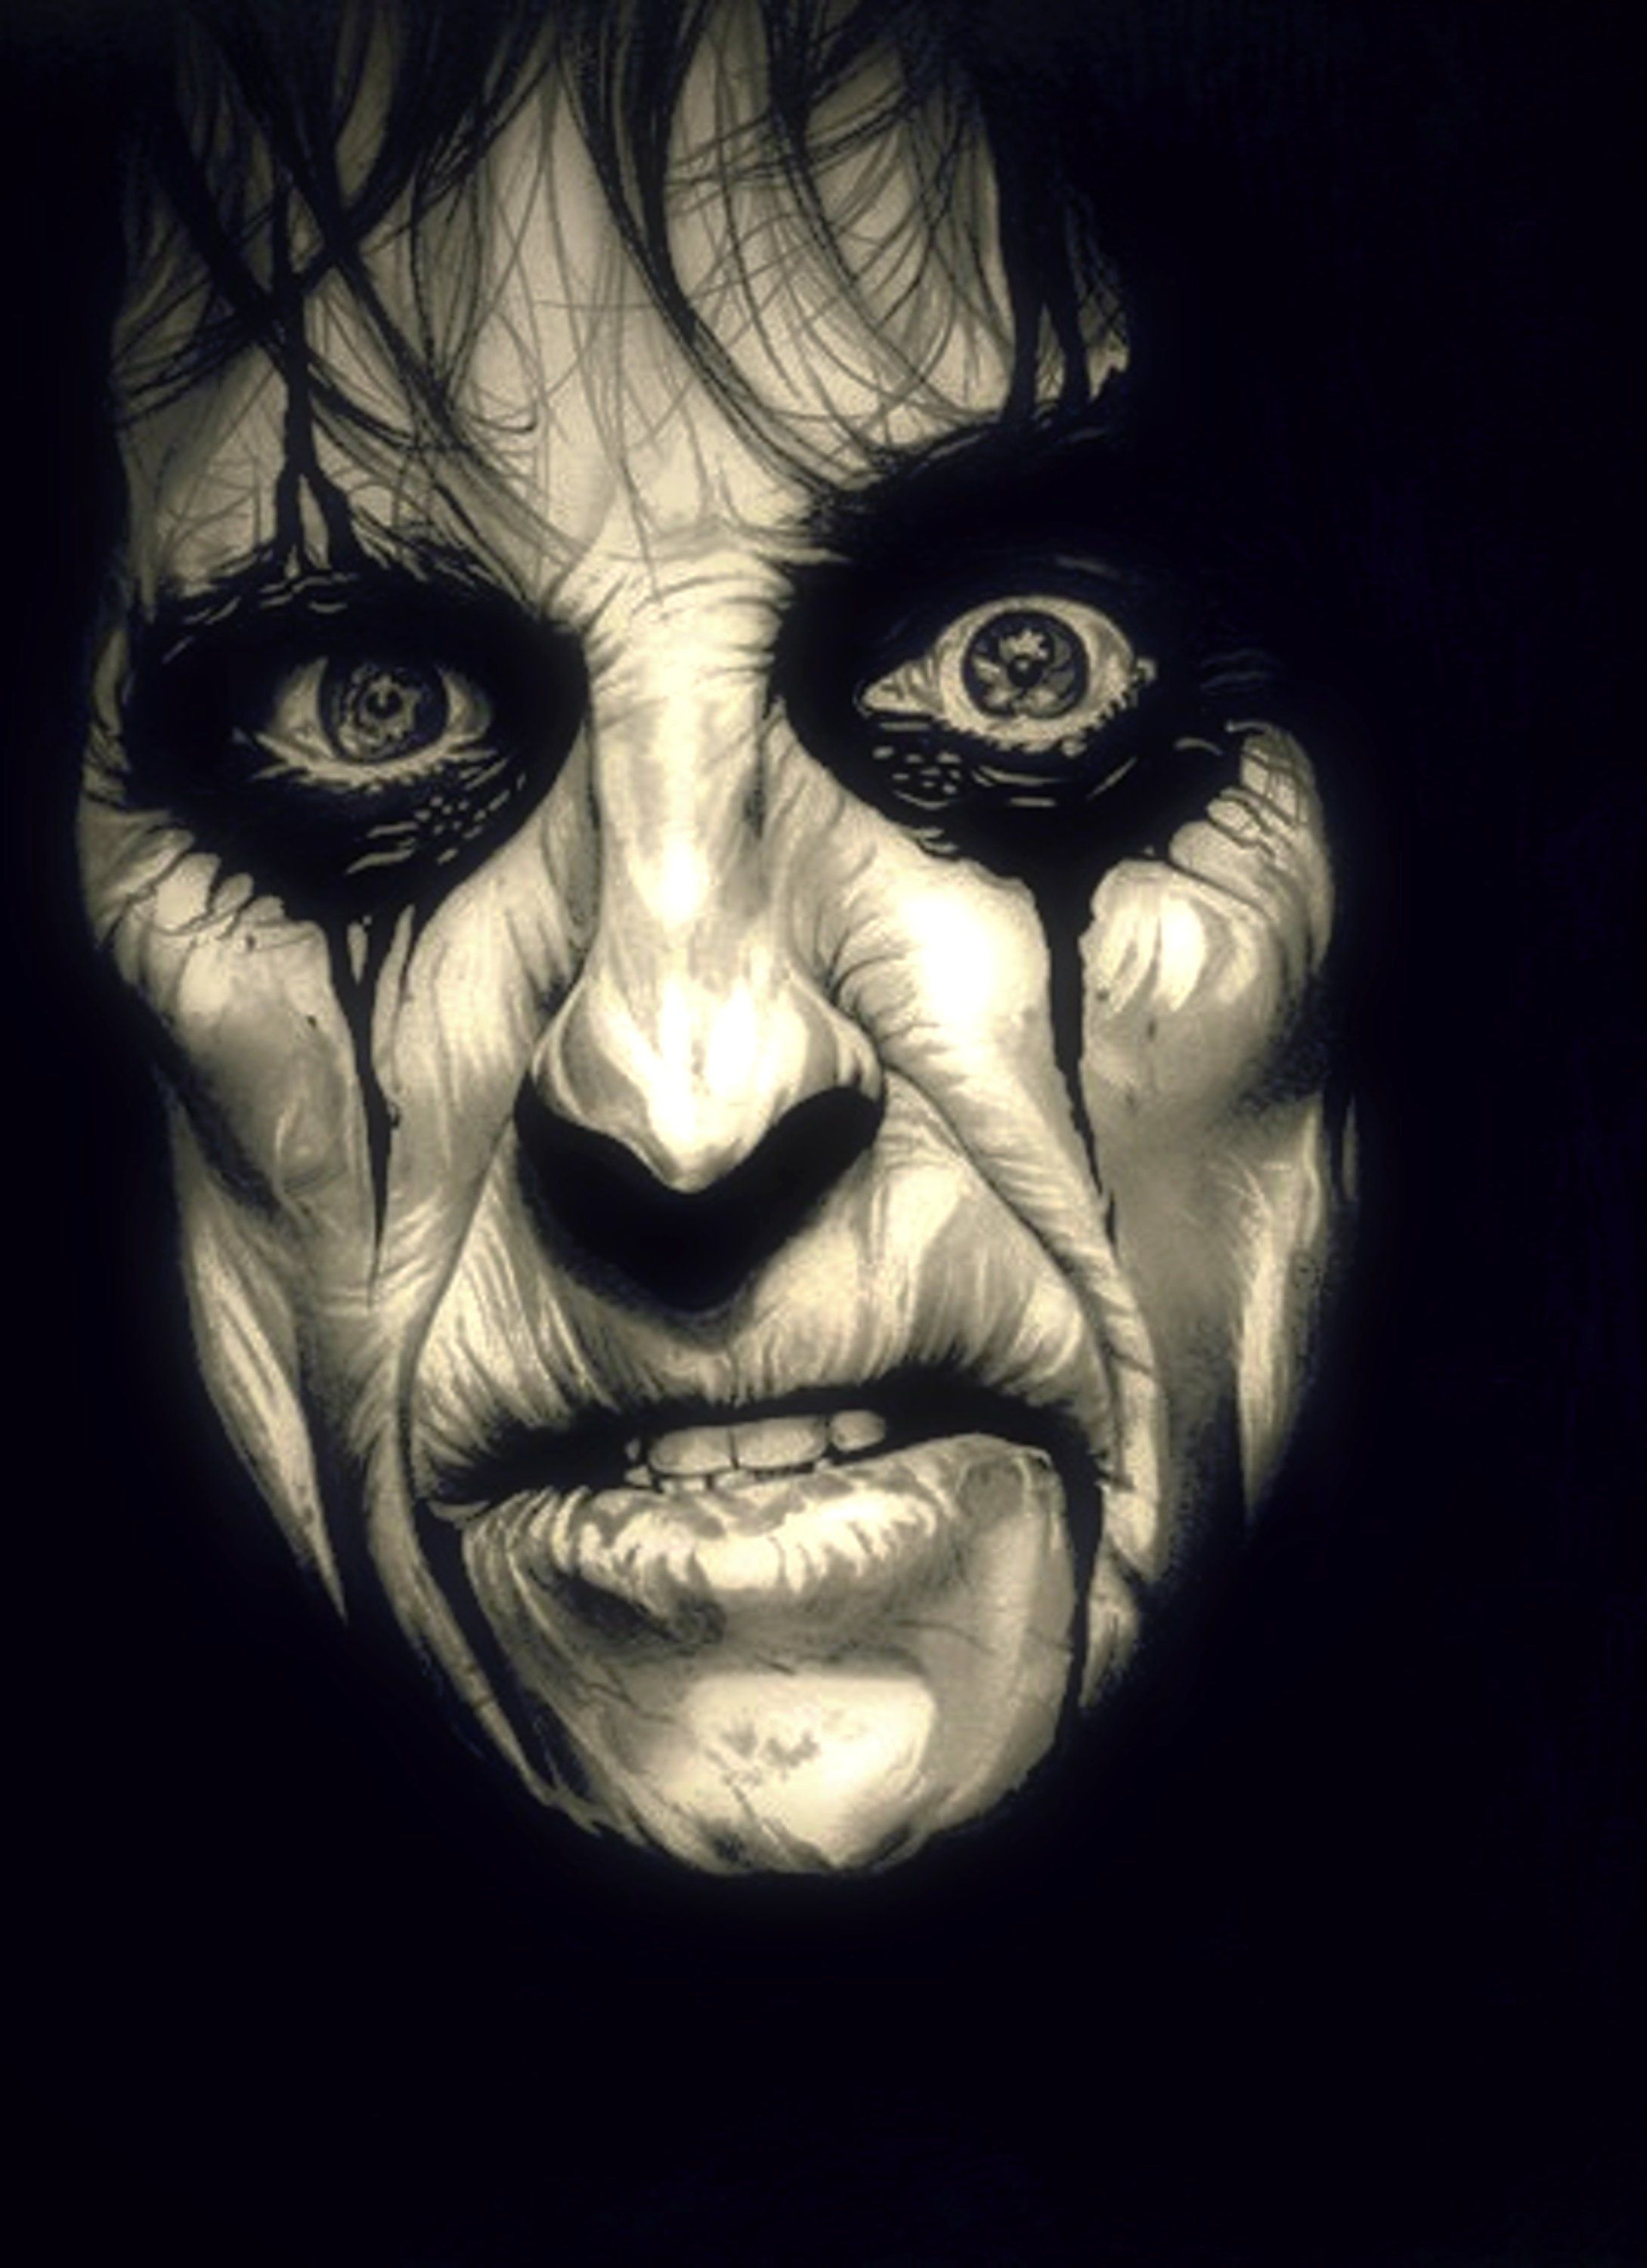 2013 Poison Alice Cooper Signed Print Limited Edition